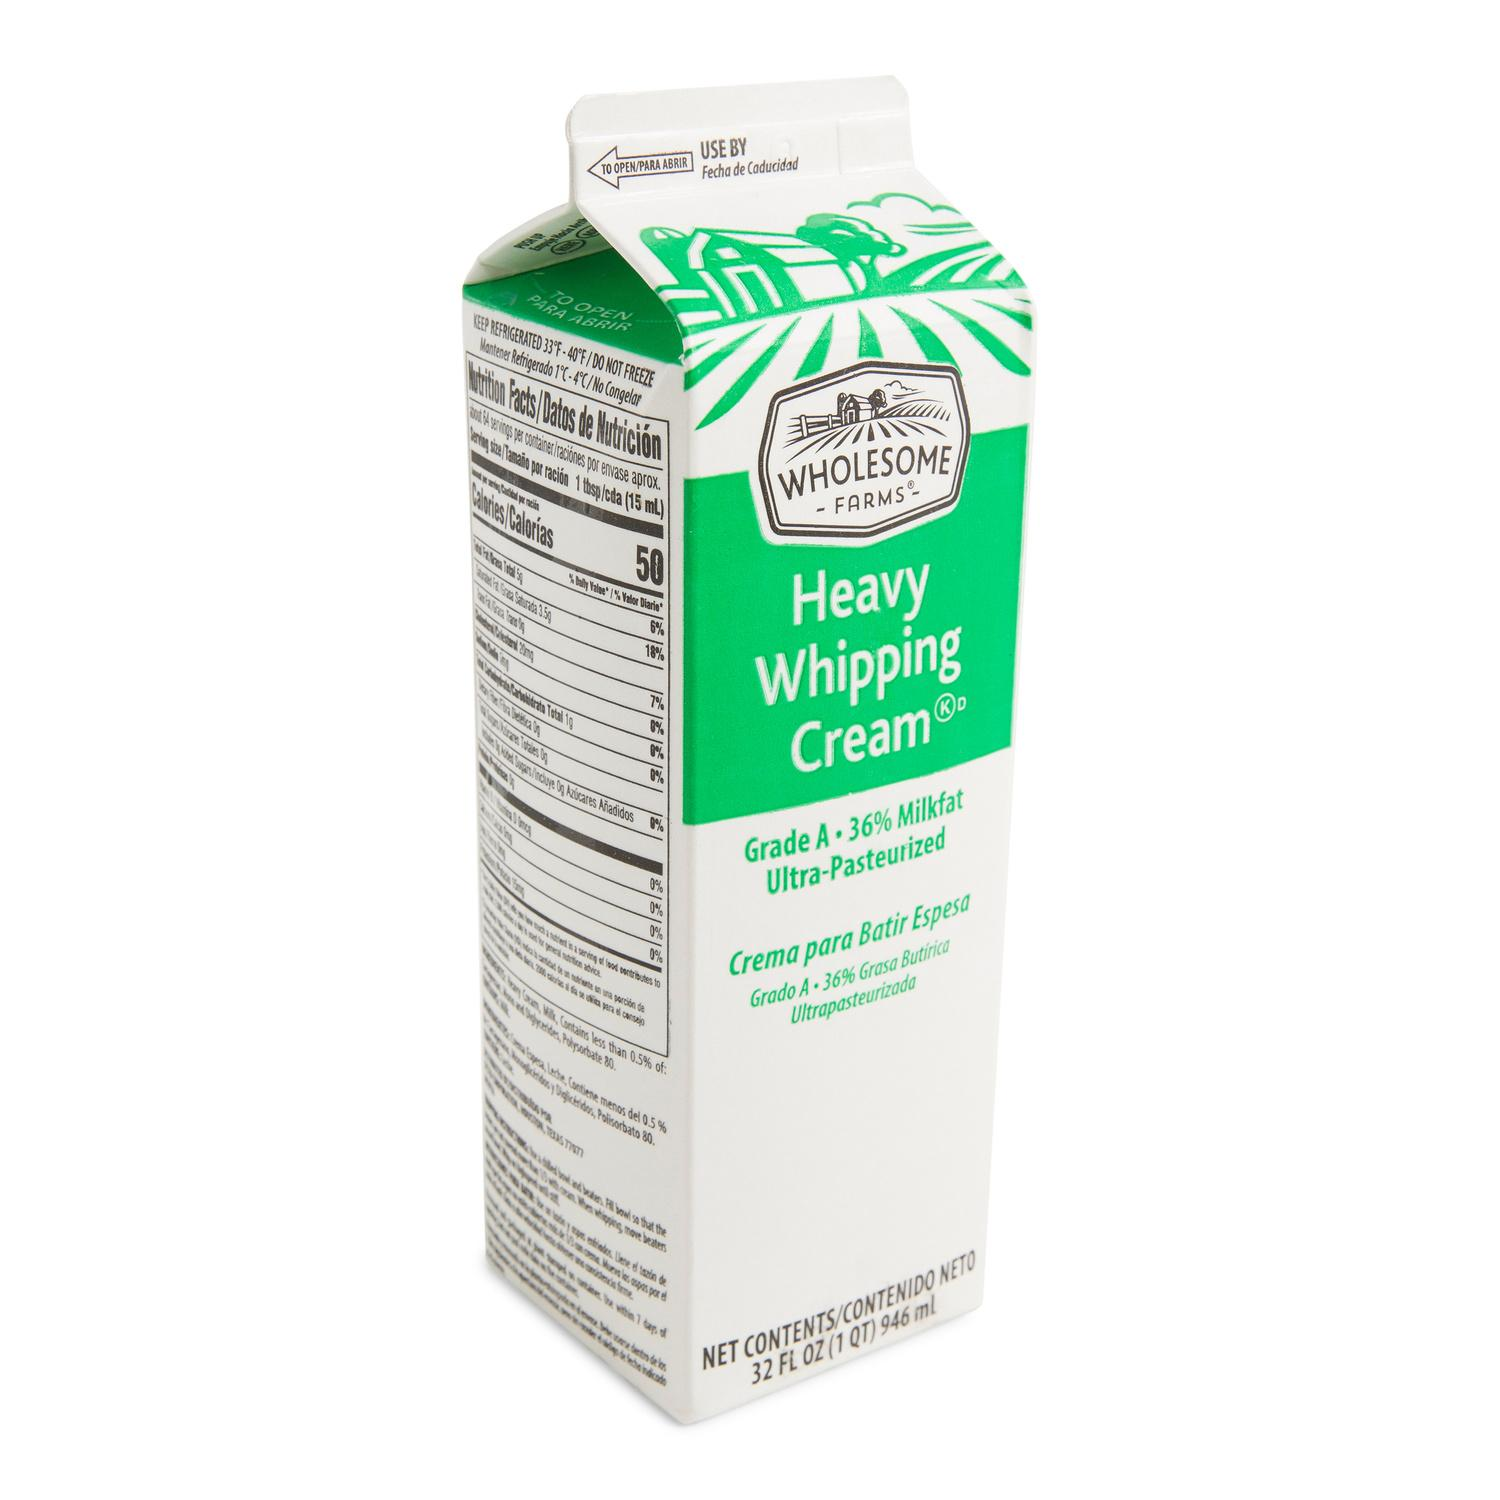 image of Cream Heavy Whipping 36% Extended Shelf Life